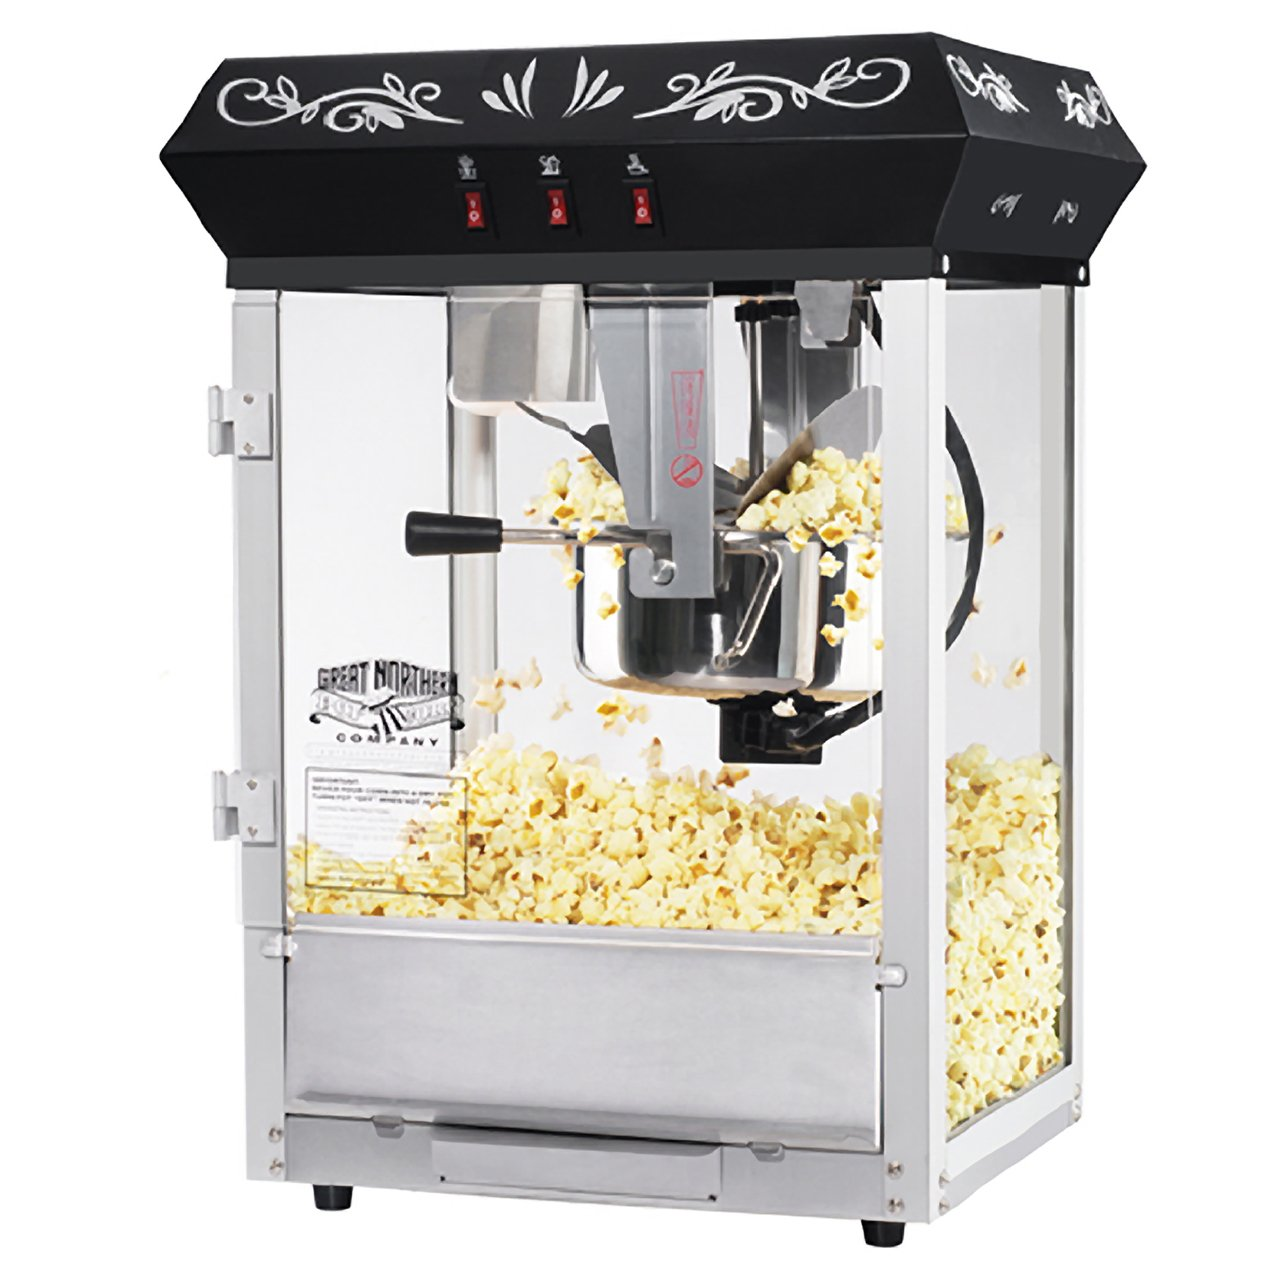 Great Northern Popcorn Black 8 oz. Ounce Foundation Movie Theater Style Popcorn Machine Top by Great Northern Popcorn Company (Image #3)